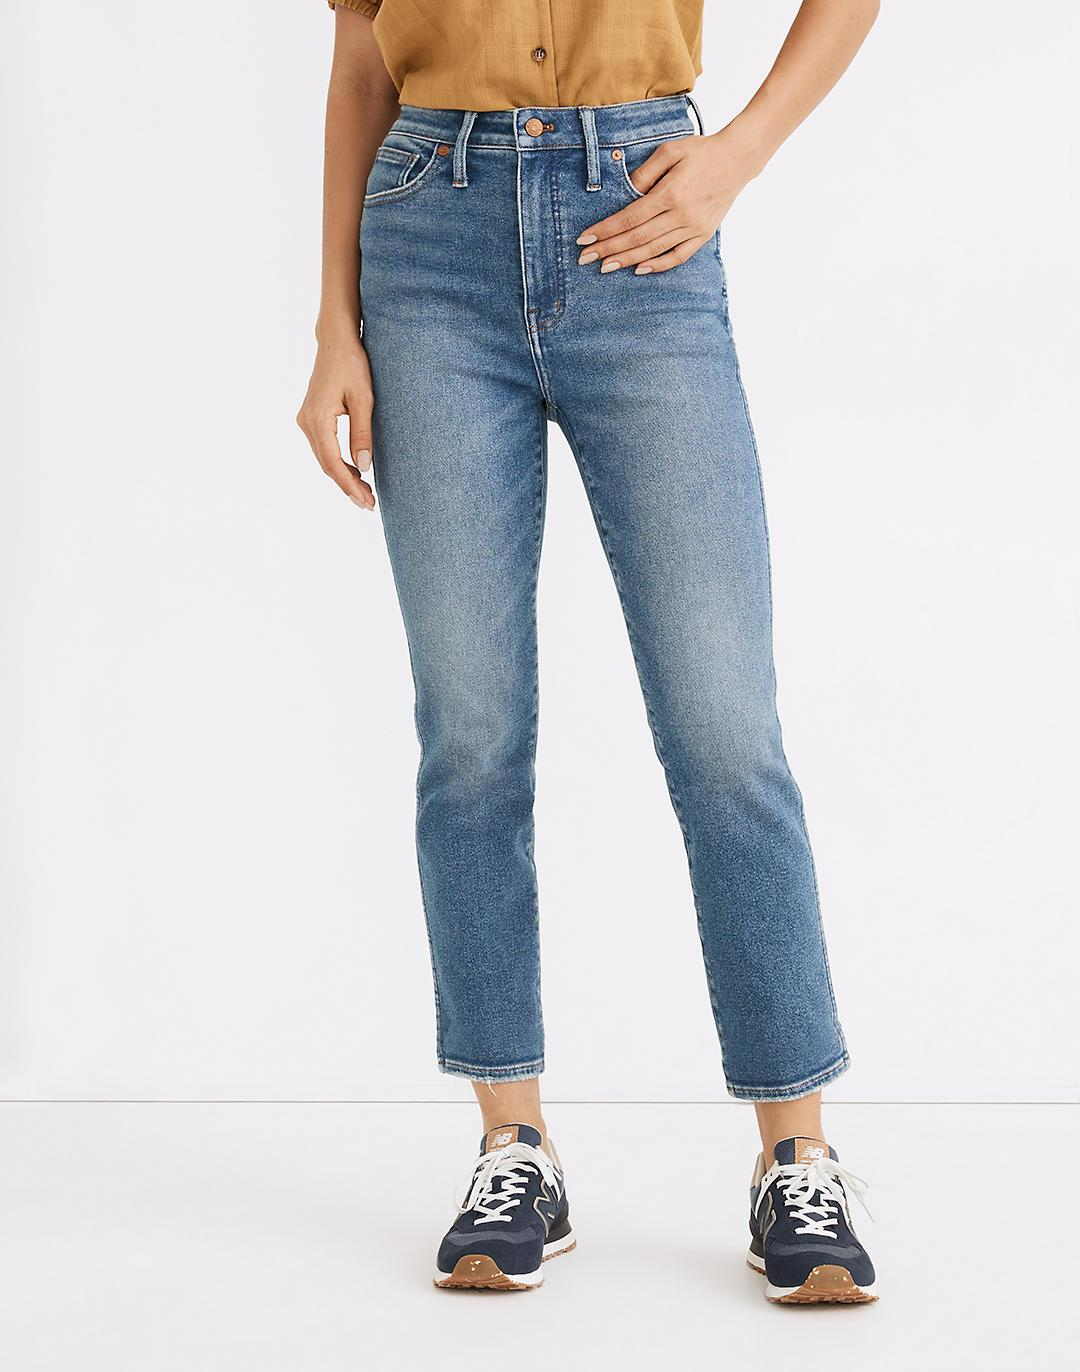 Tall Curvy Stovepipe Jeans in Ditmas Wash